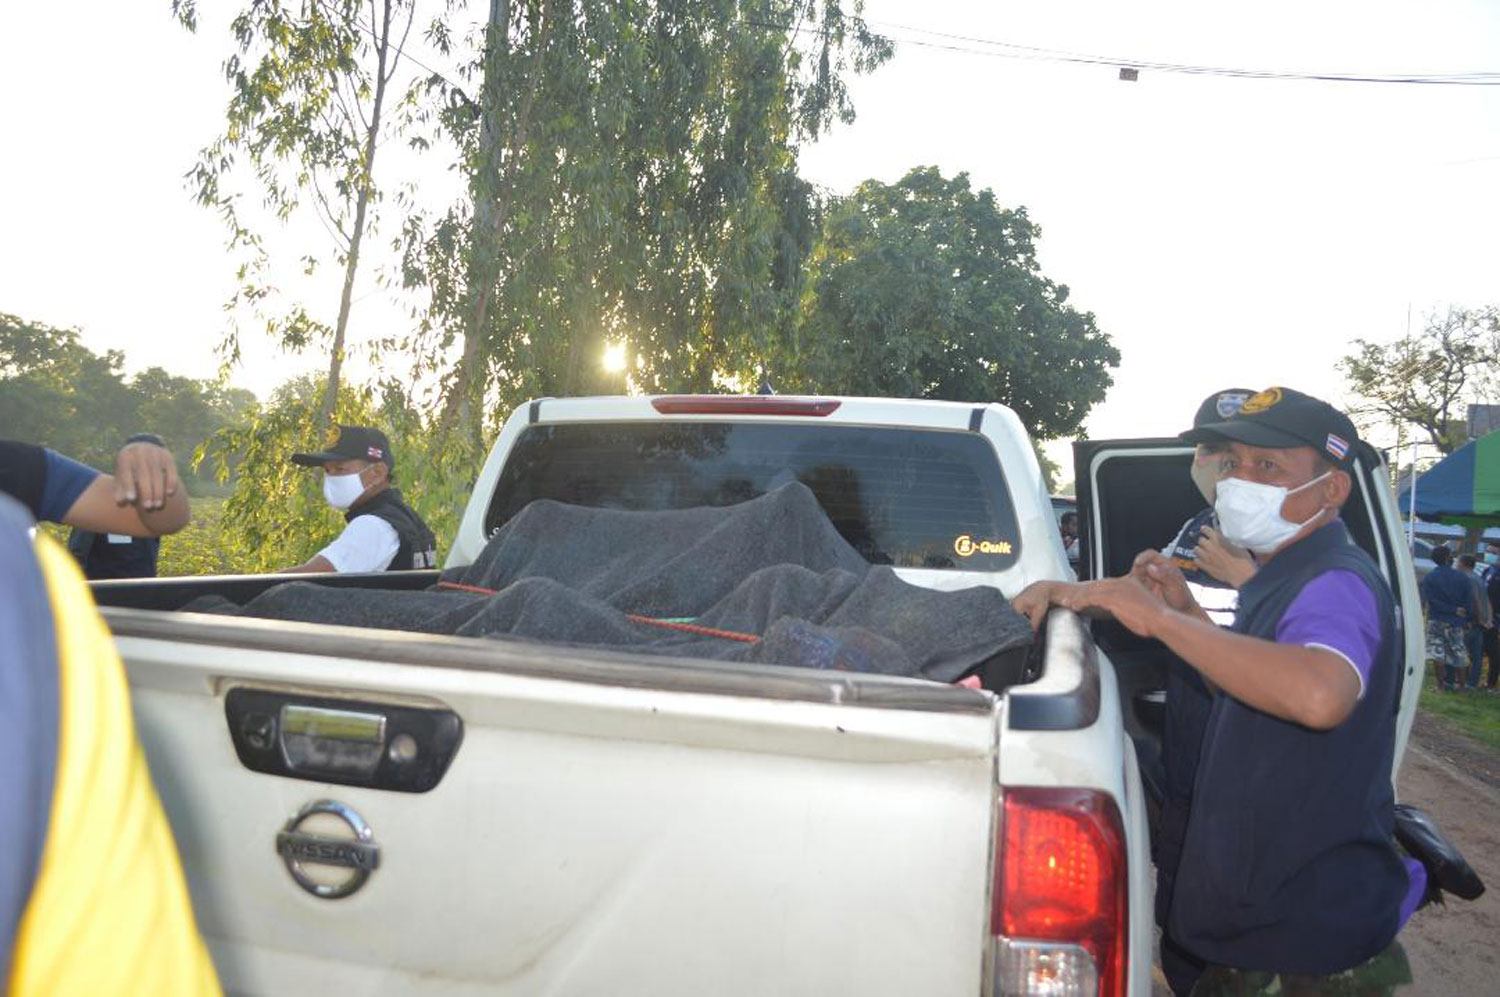 Illegal Cambodian migrants hide under a blanket on a pickup truck intercepted by officials at a checkpoint in Khok Sung district of Sa Kaeo. (Photo by Sawat Ketngam)